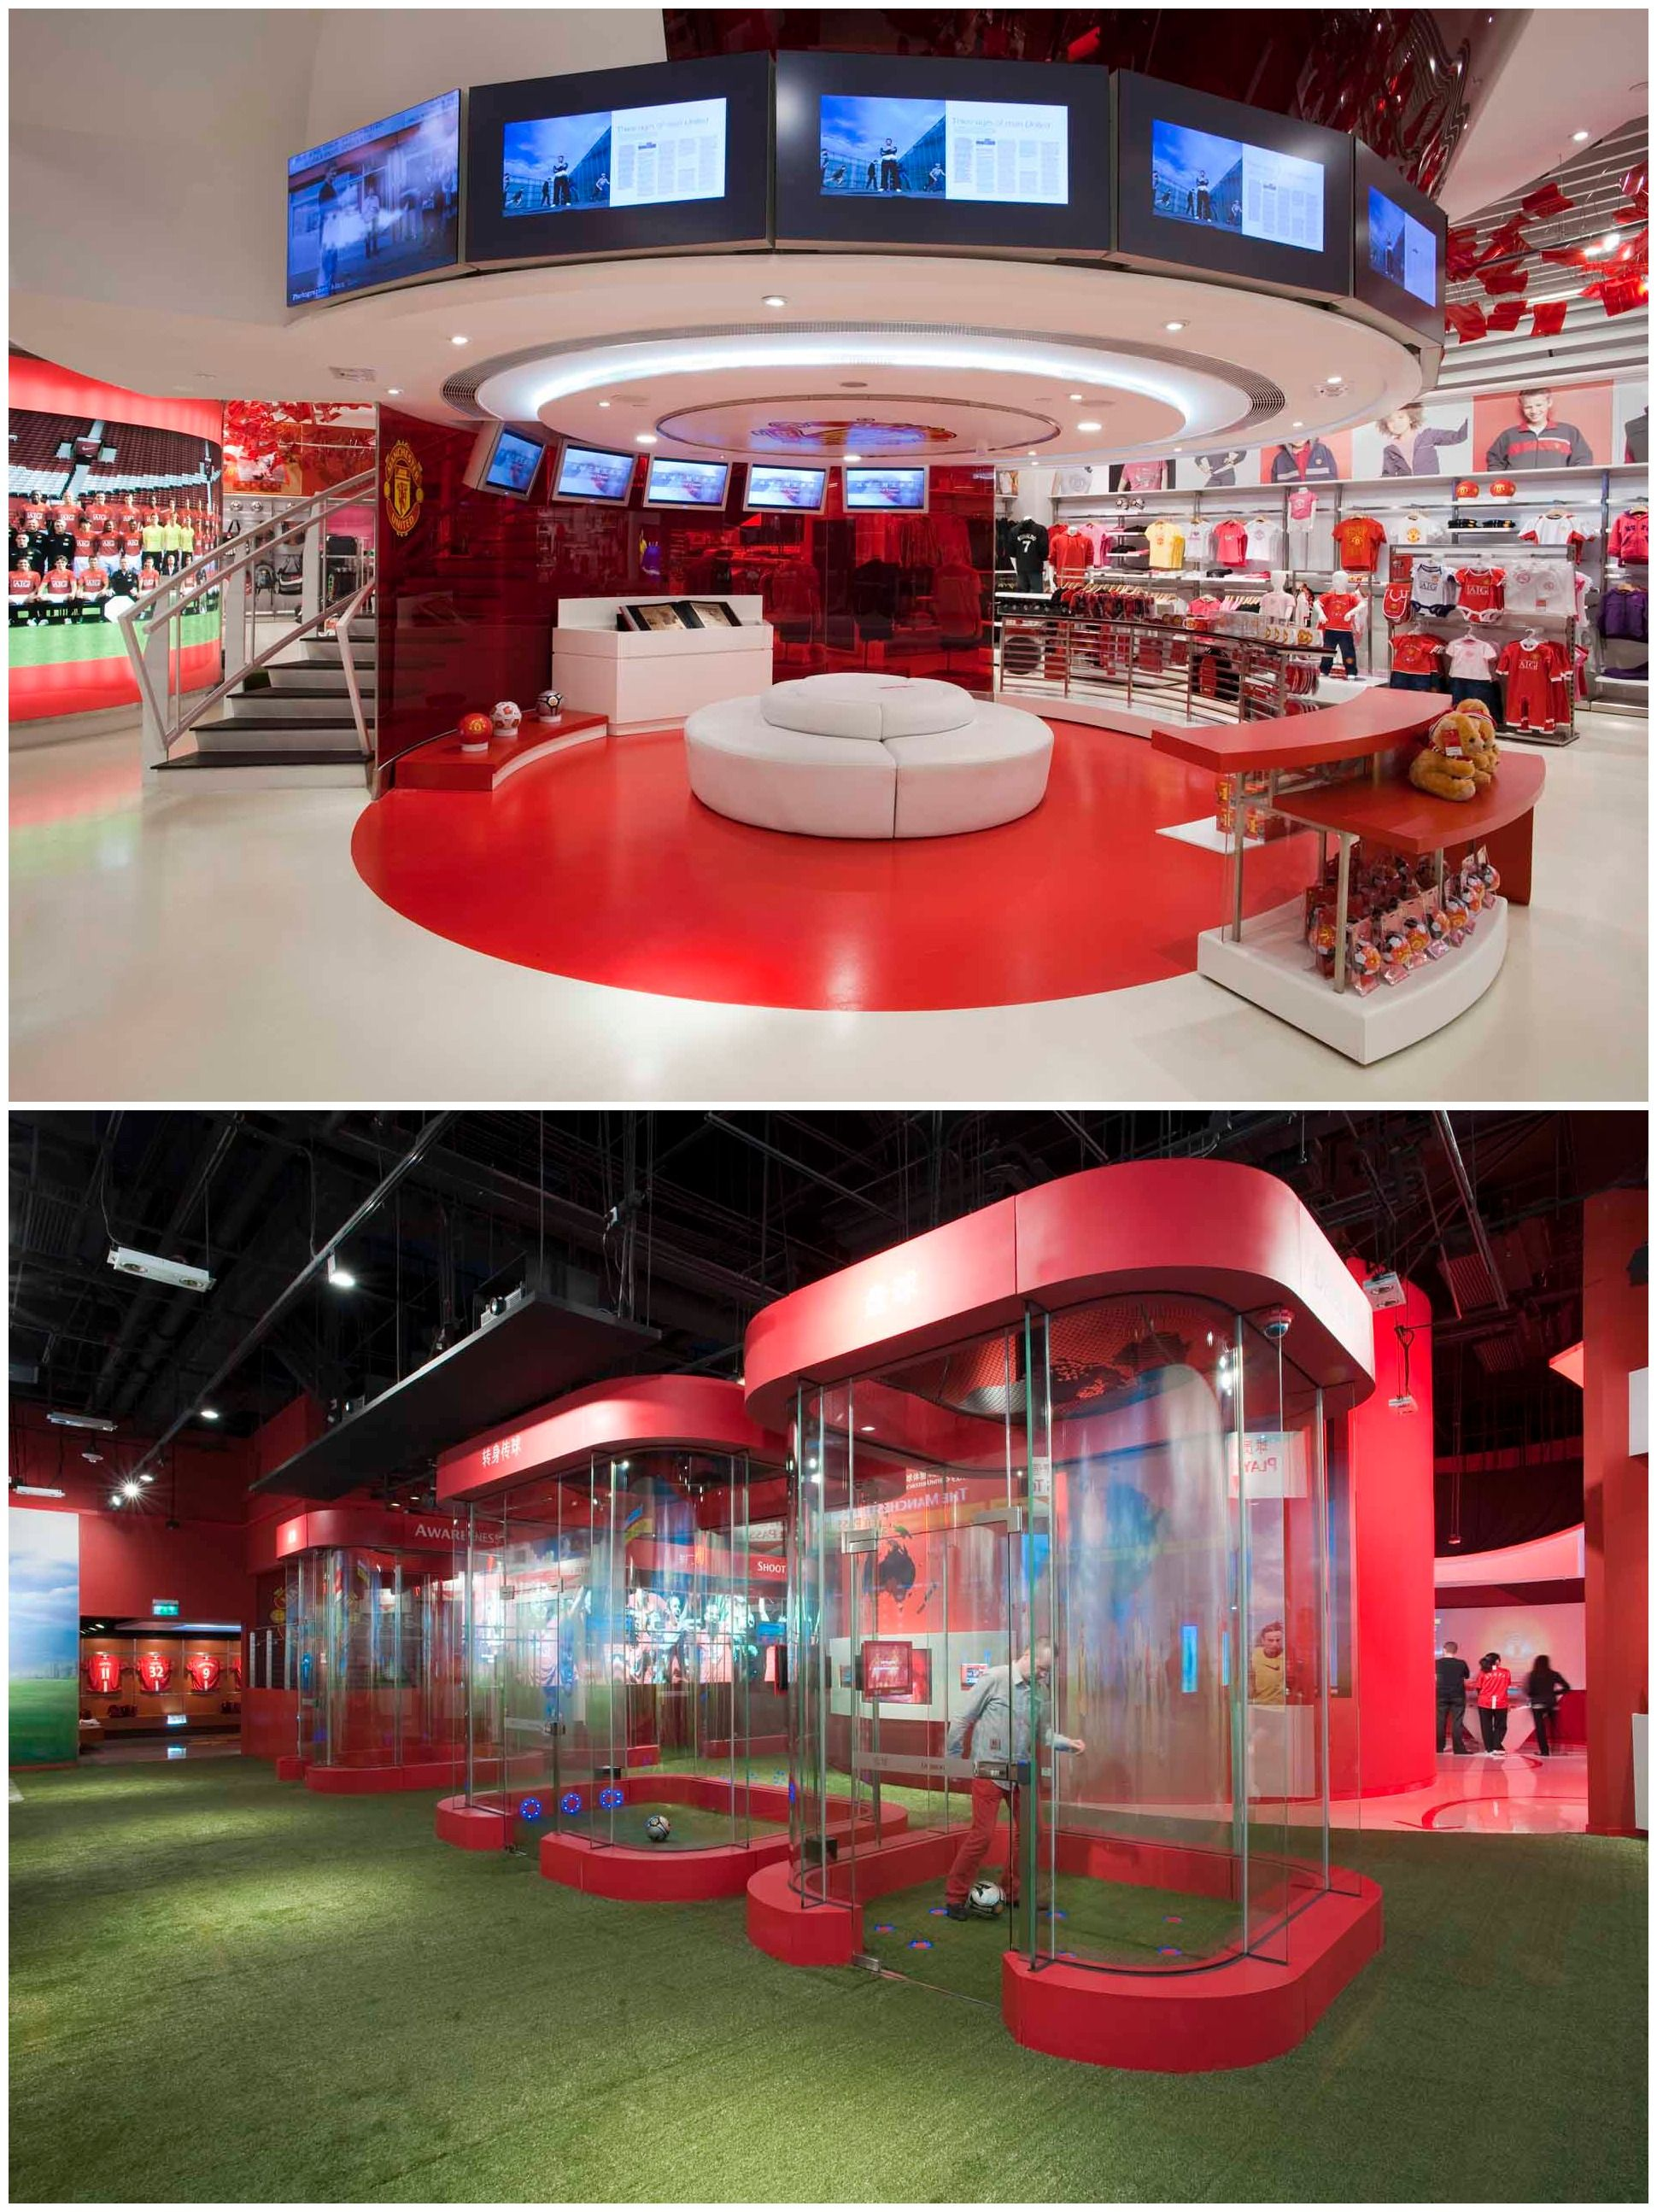 Official Manchester United Online Megastore Interior Retail Store Design Store Architecture Retail Store Design Champions Of The World